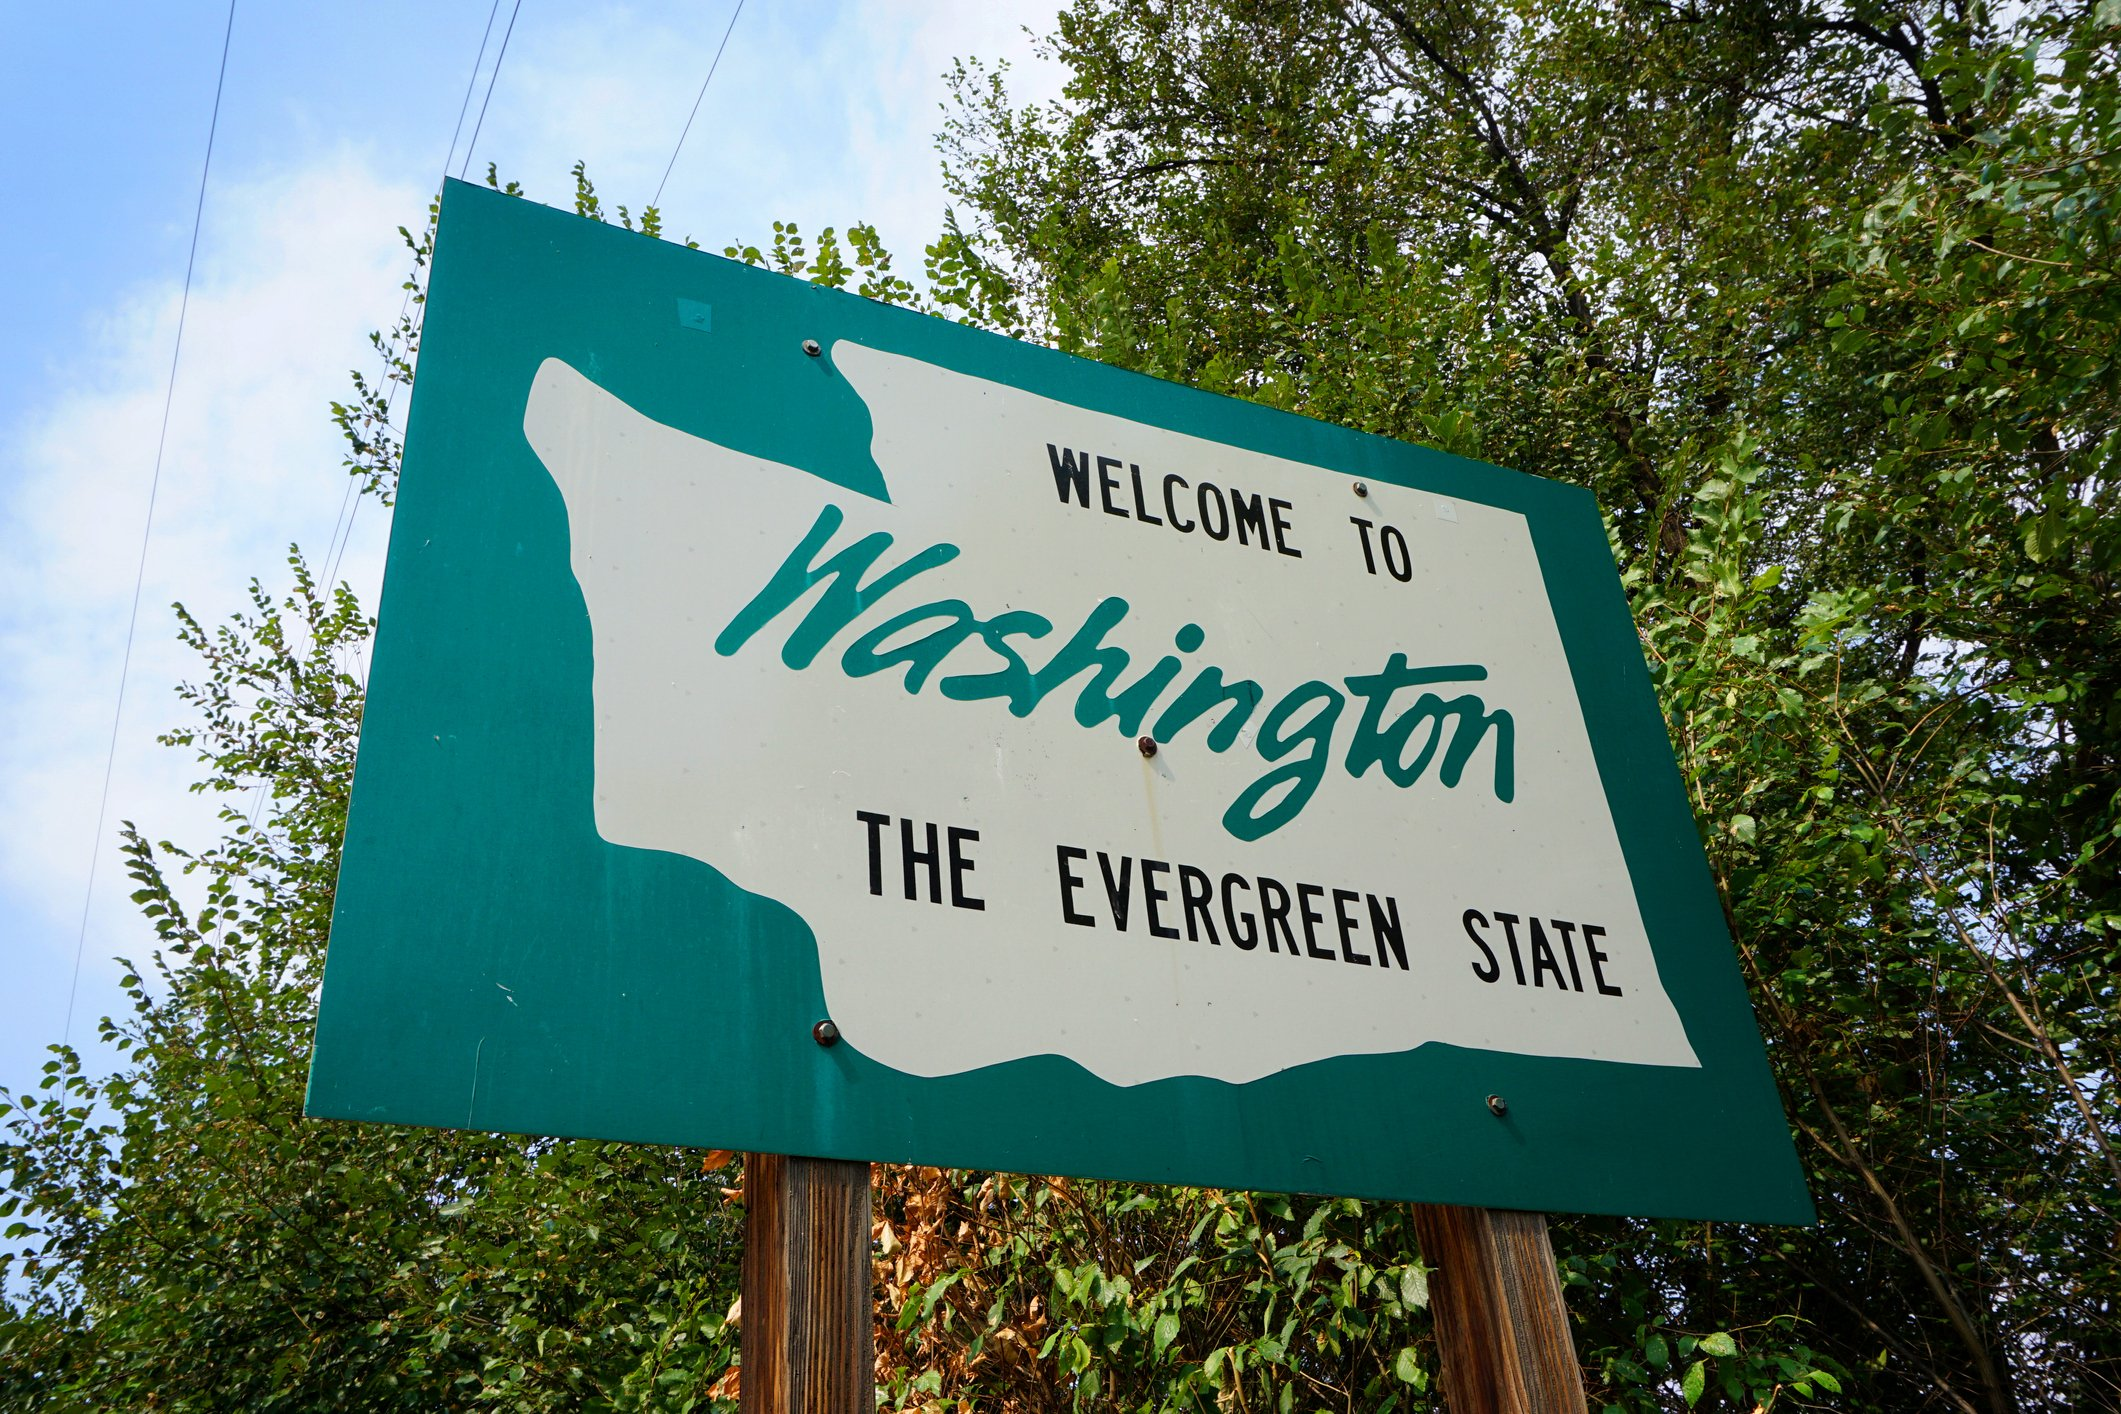 Slide 48 of 51: Washington is the only state to be named after a U.S. president.